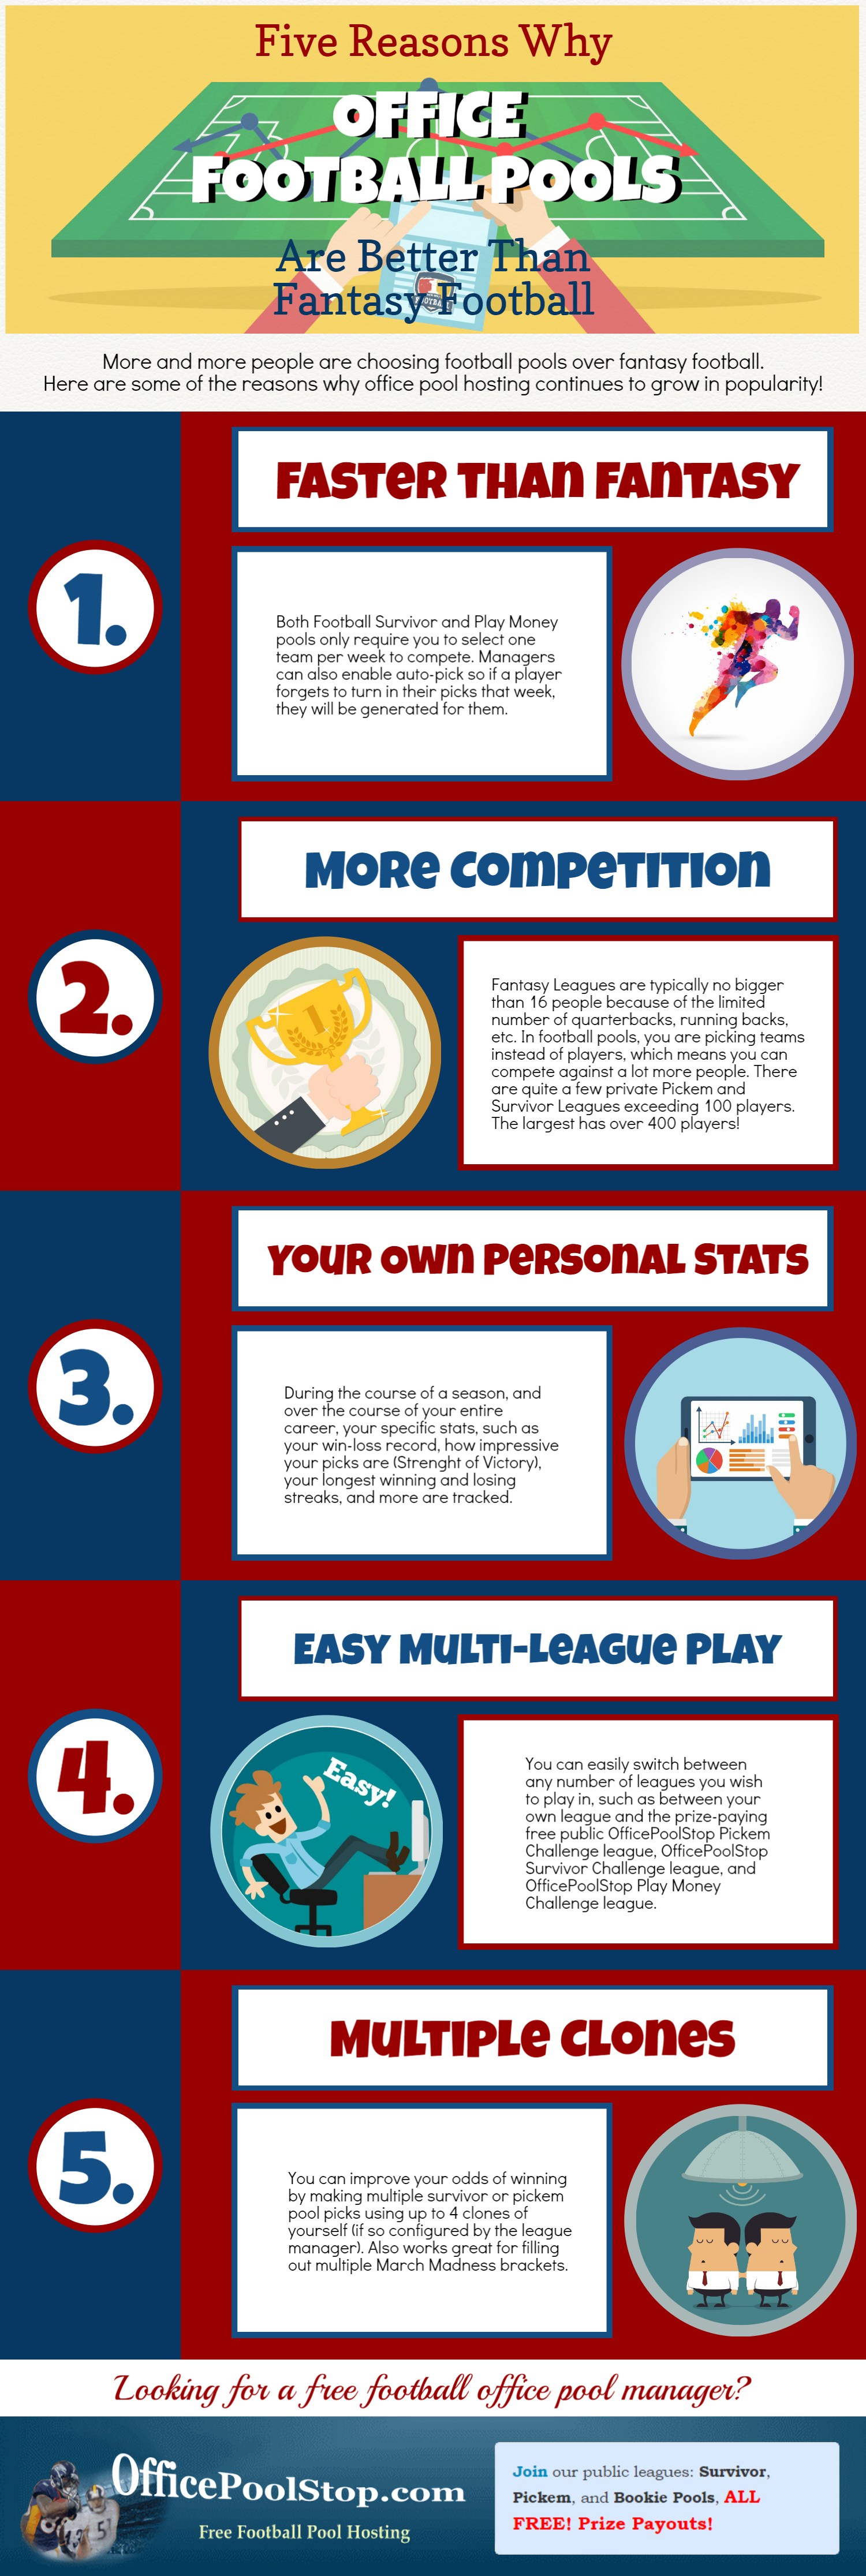 five reasons why office football pools are better than fantasy football